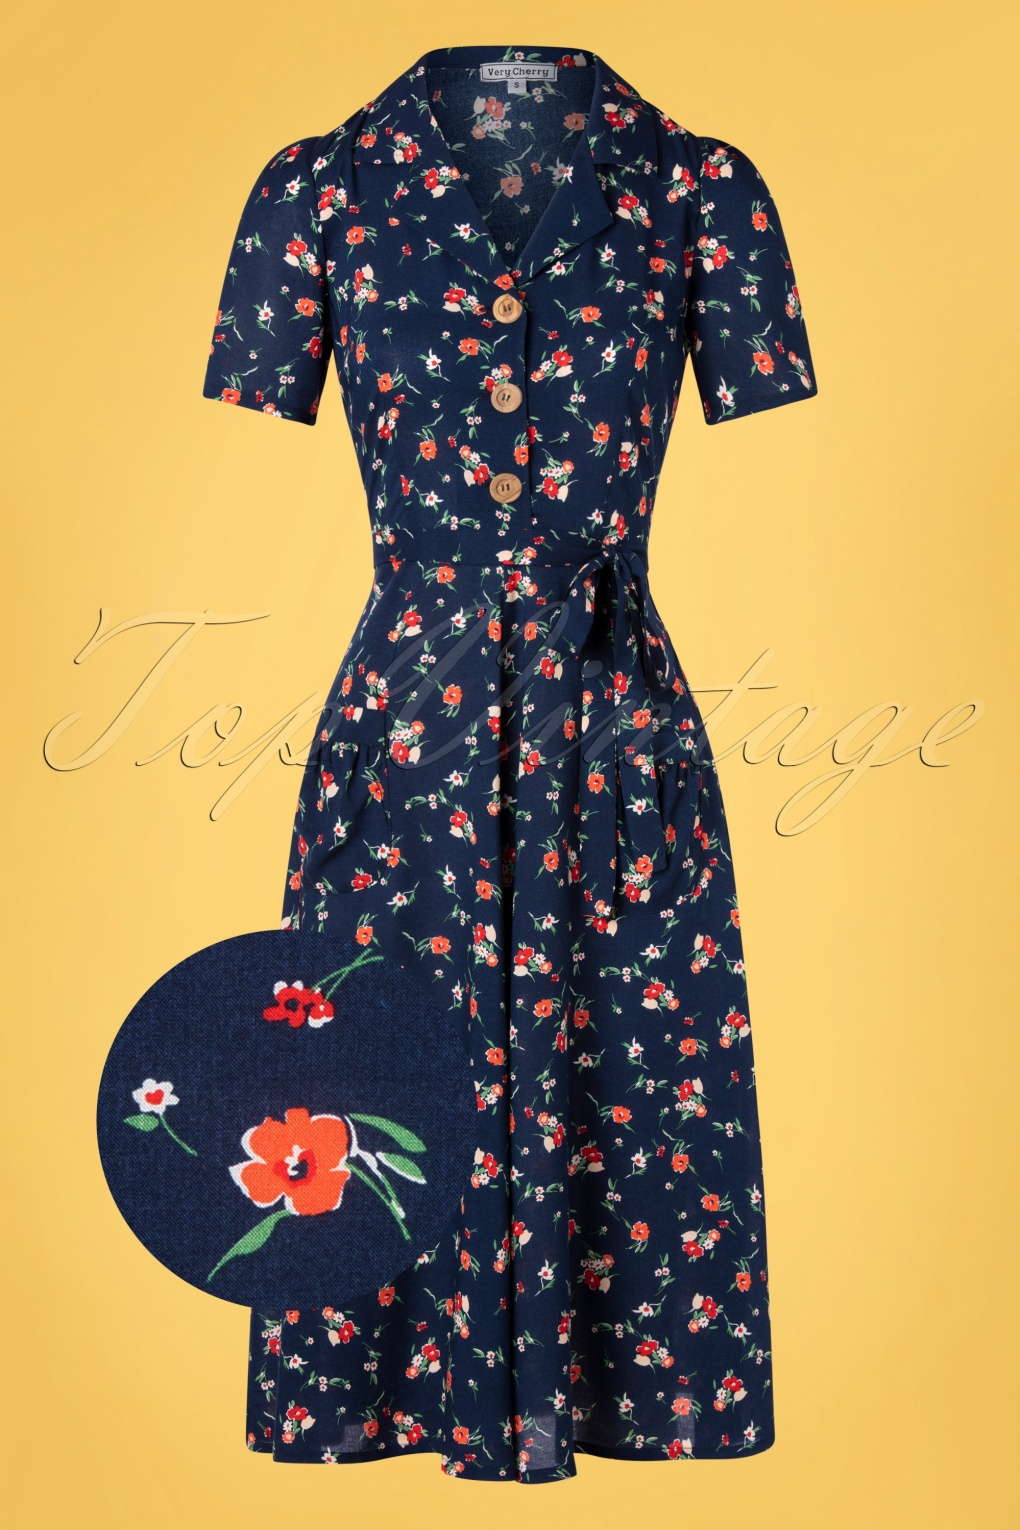 1940s Dresses | 40s Dress, Swing Dress 40s Primavera Revers Midi Dress in Navy £124.29 AT vintagedancer.com